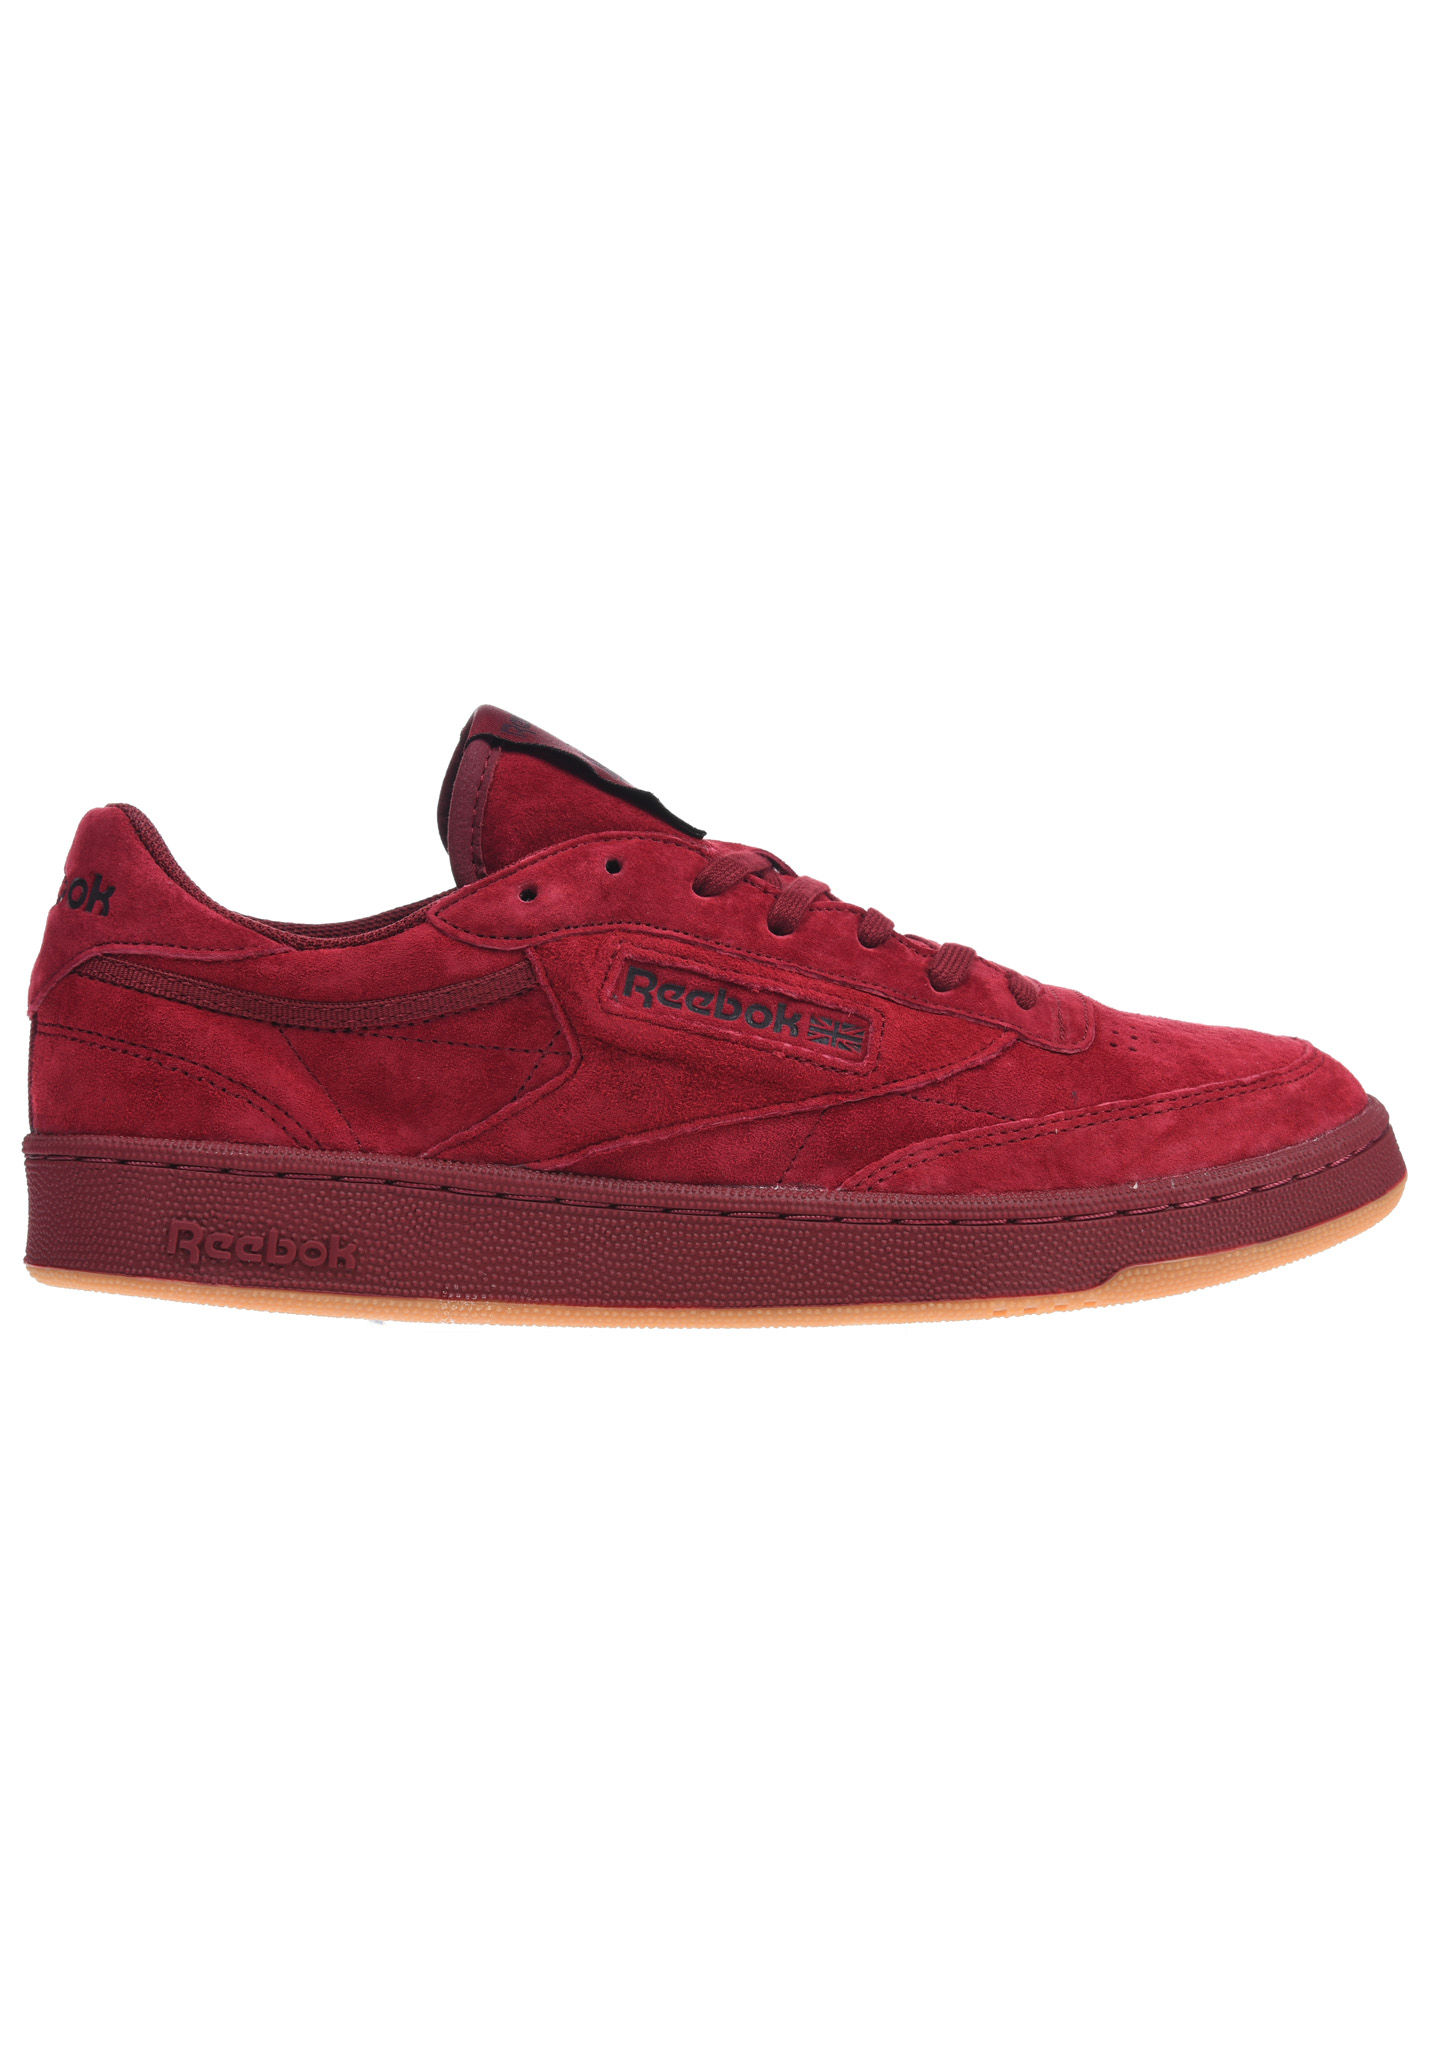 Chaussures Reebok rouges homme qQvnihP8